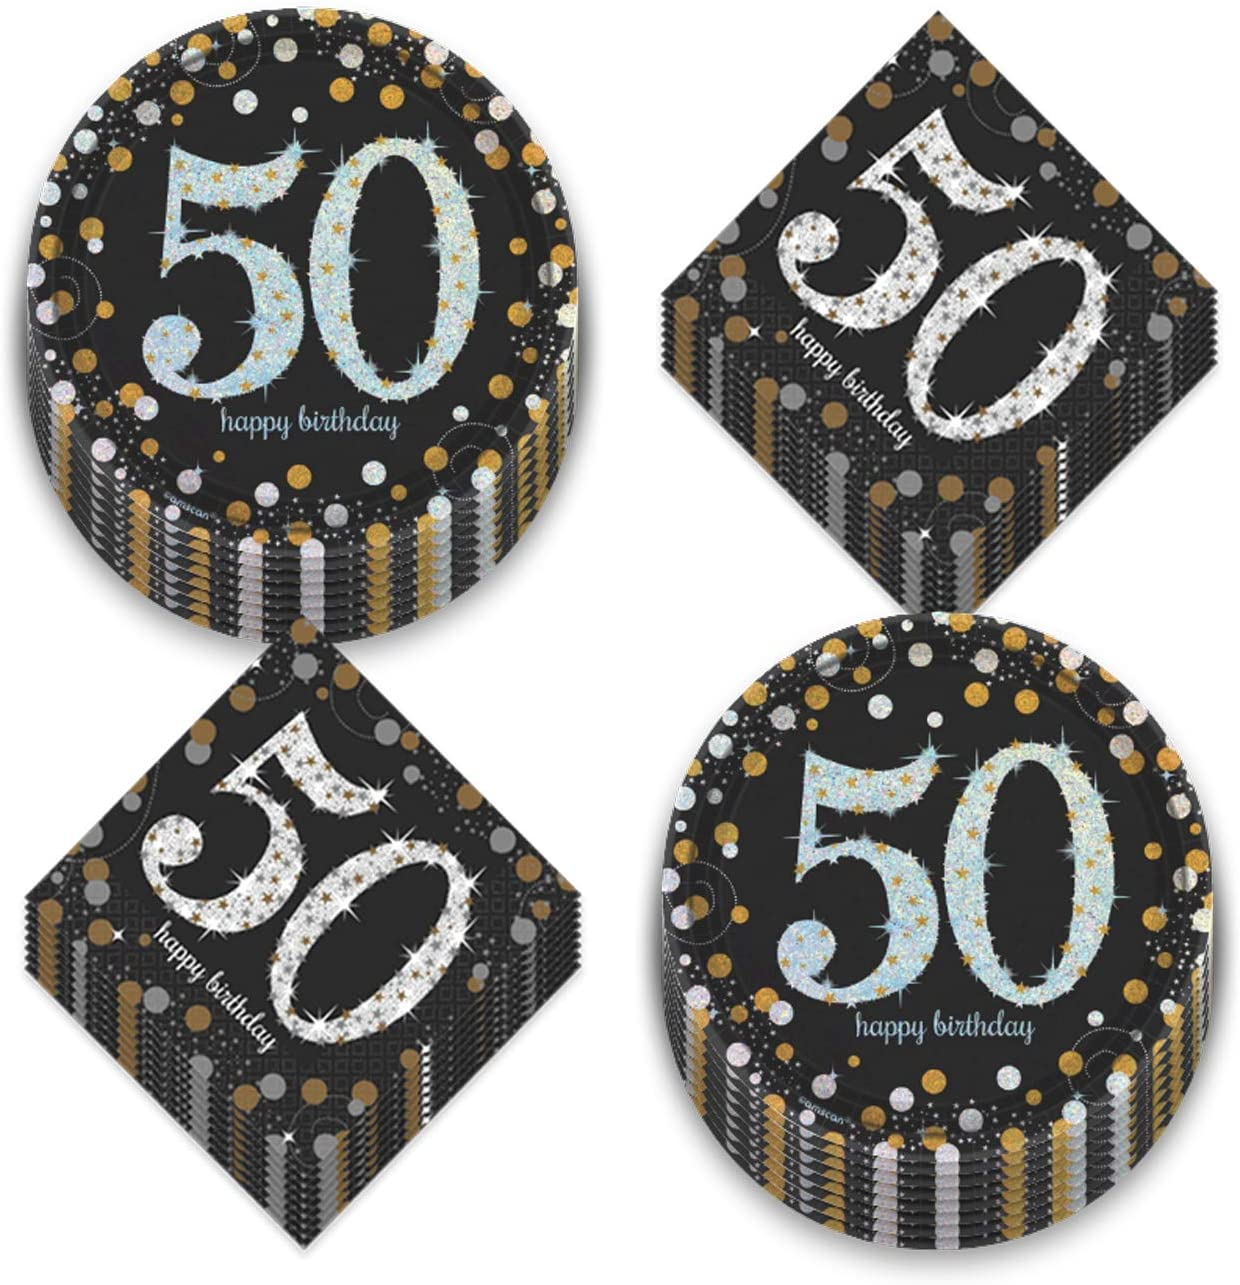 50th Birthday Party Supplies - Metallic Silver and Gold Dot Paper Dessert Plates and Beverage Napkins (Serves 16)